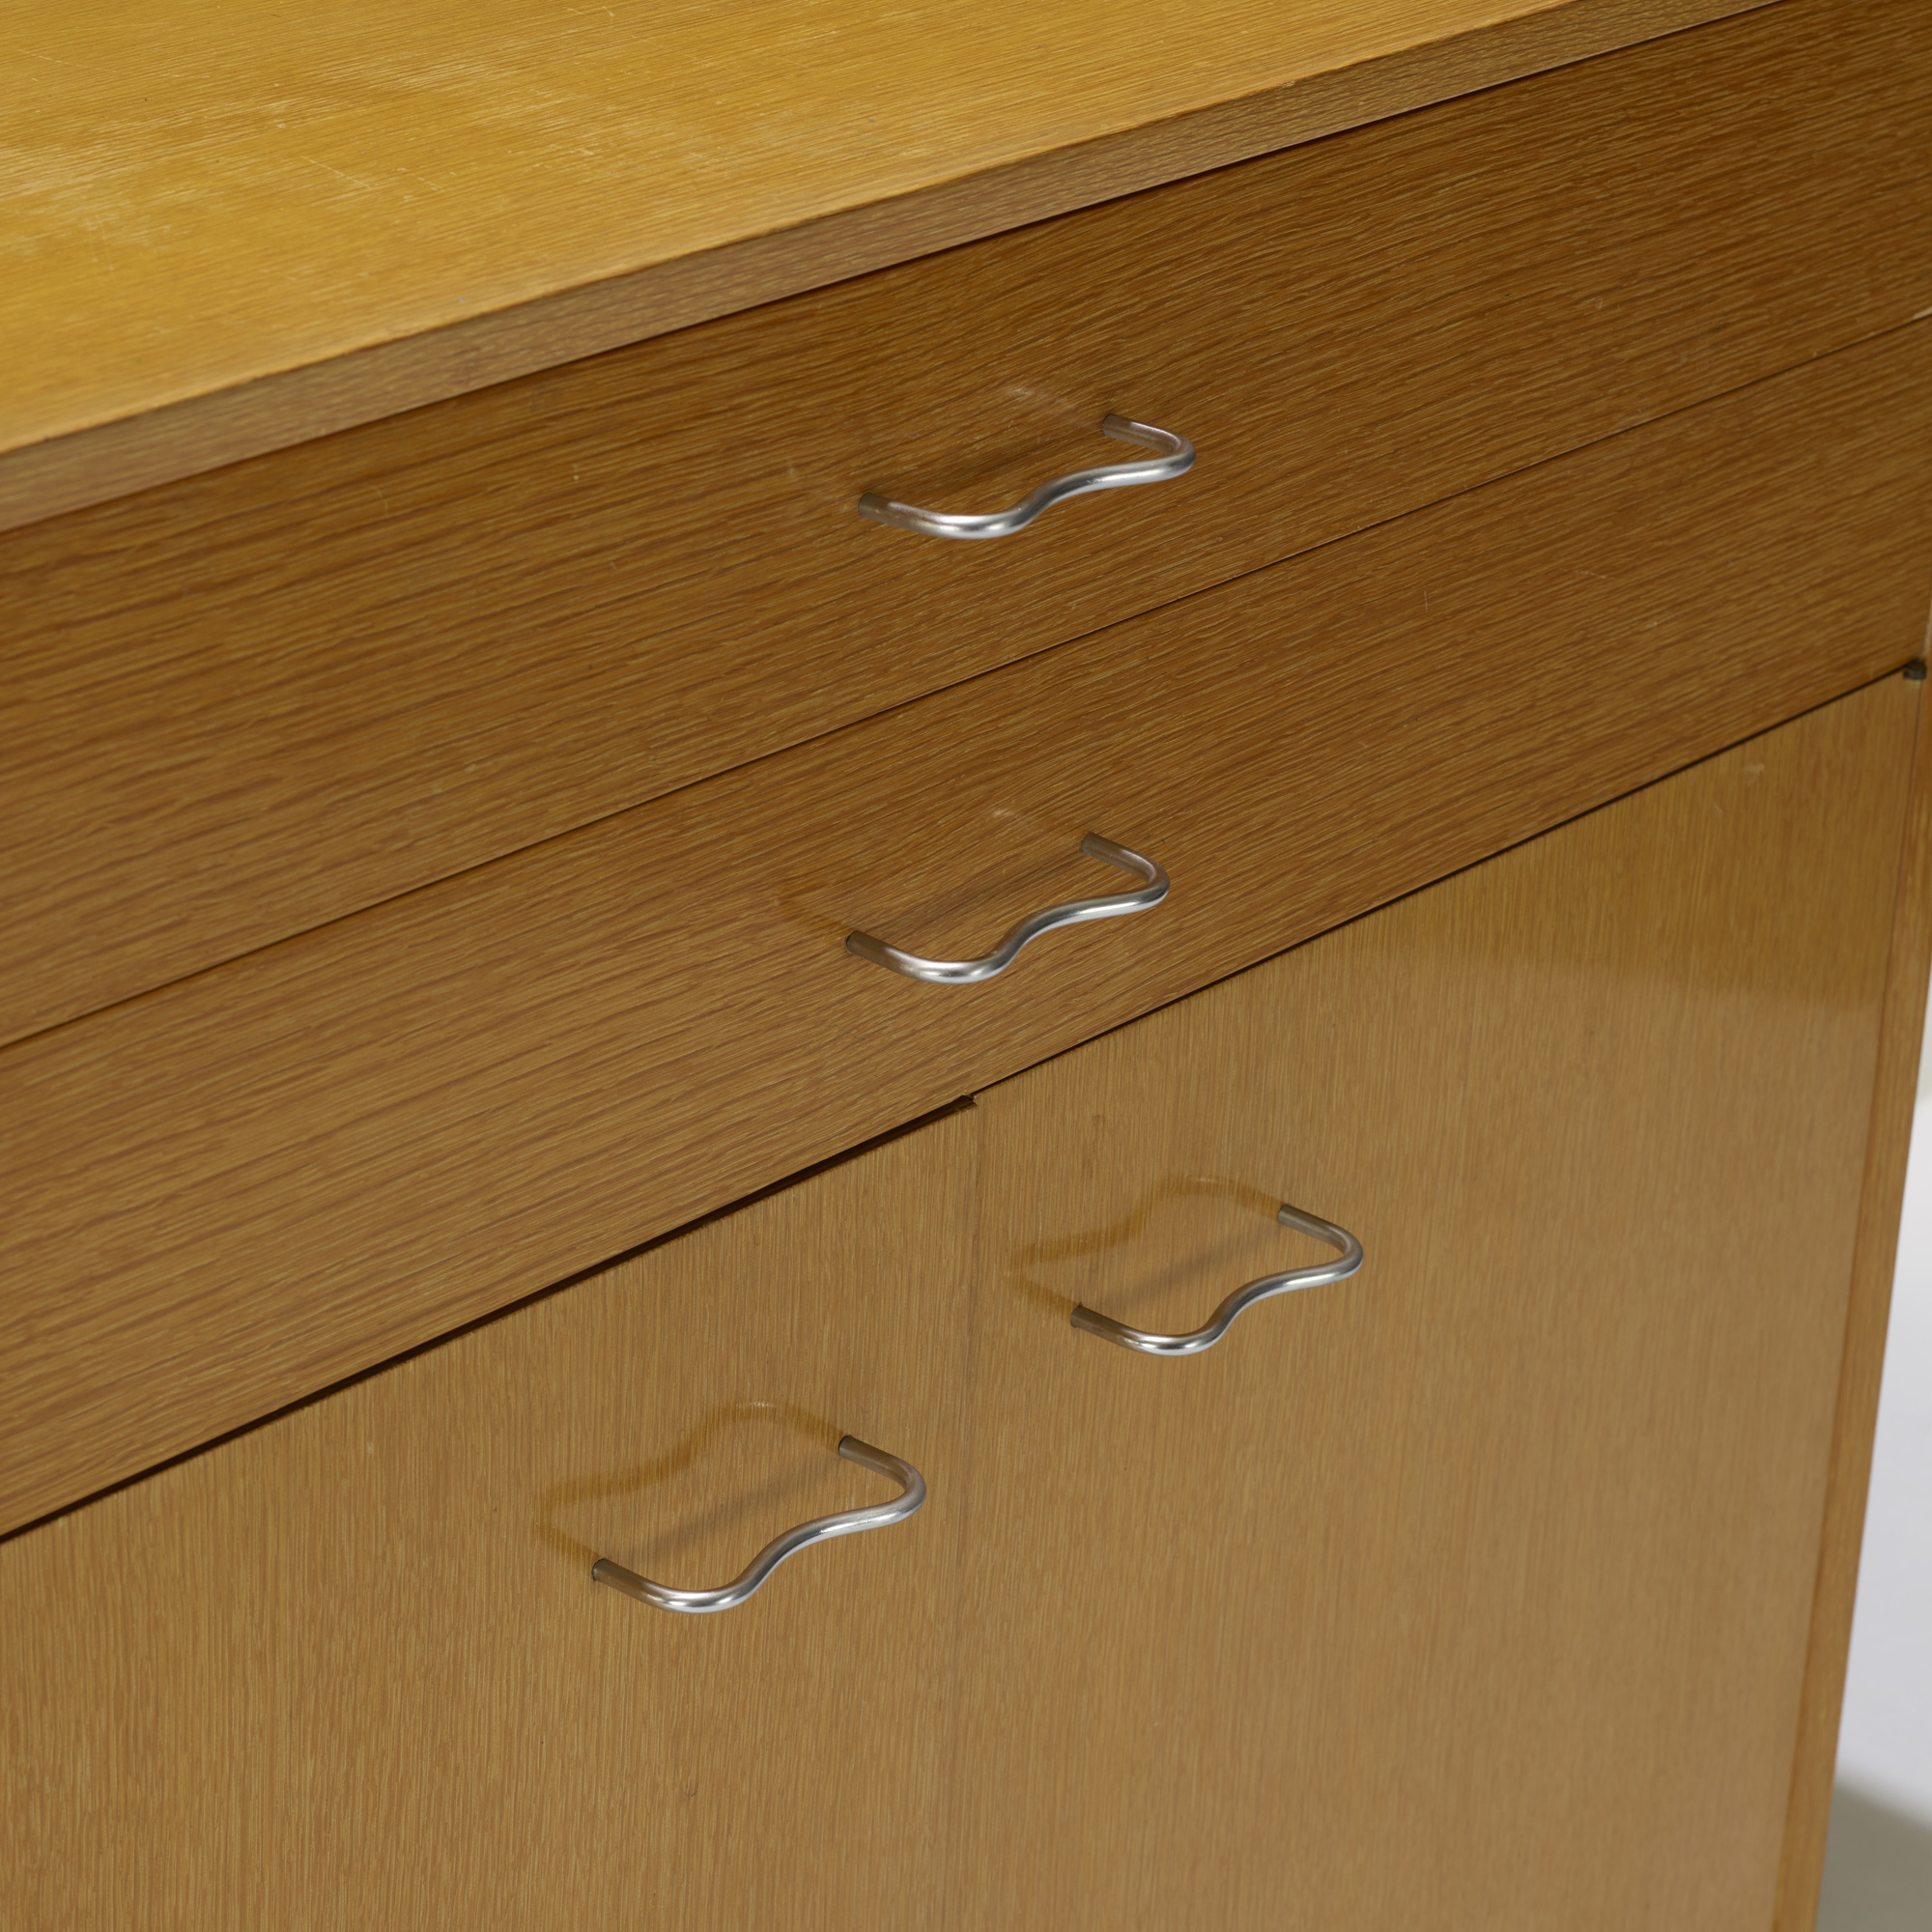 233: George Nelson & Associates / cabinet, model 4626 from the Basic Cabinet Series (3 of 3)